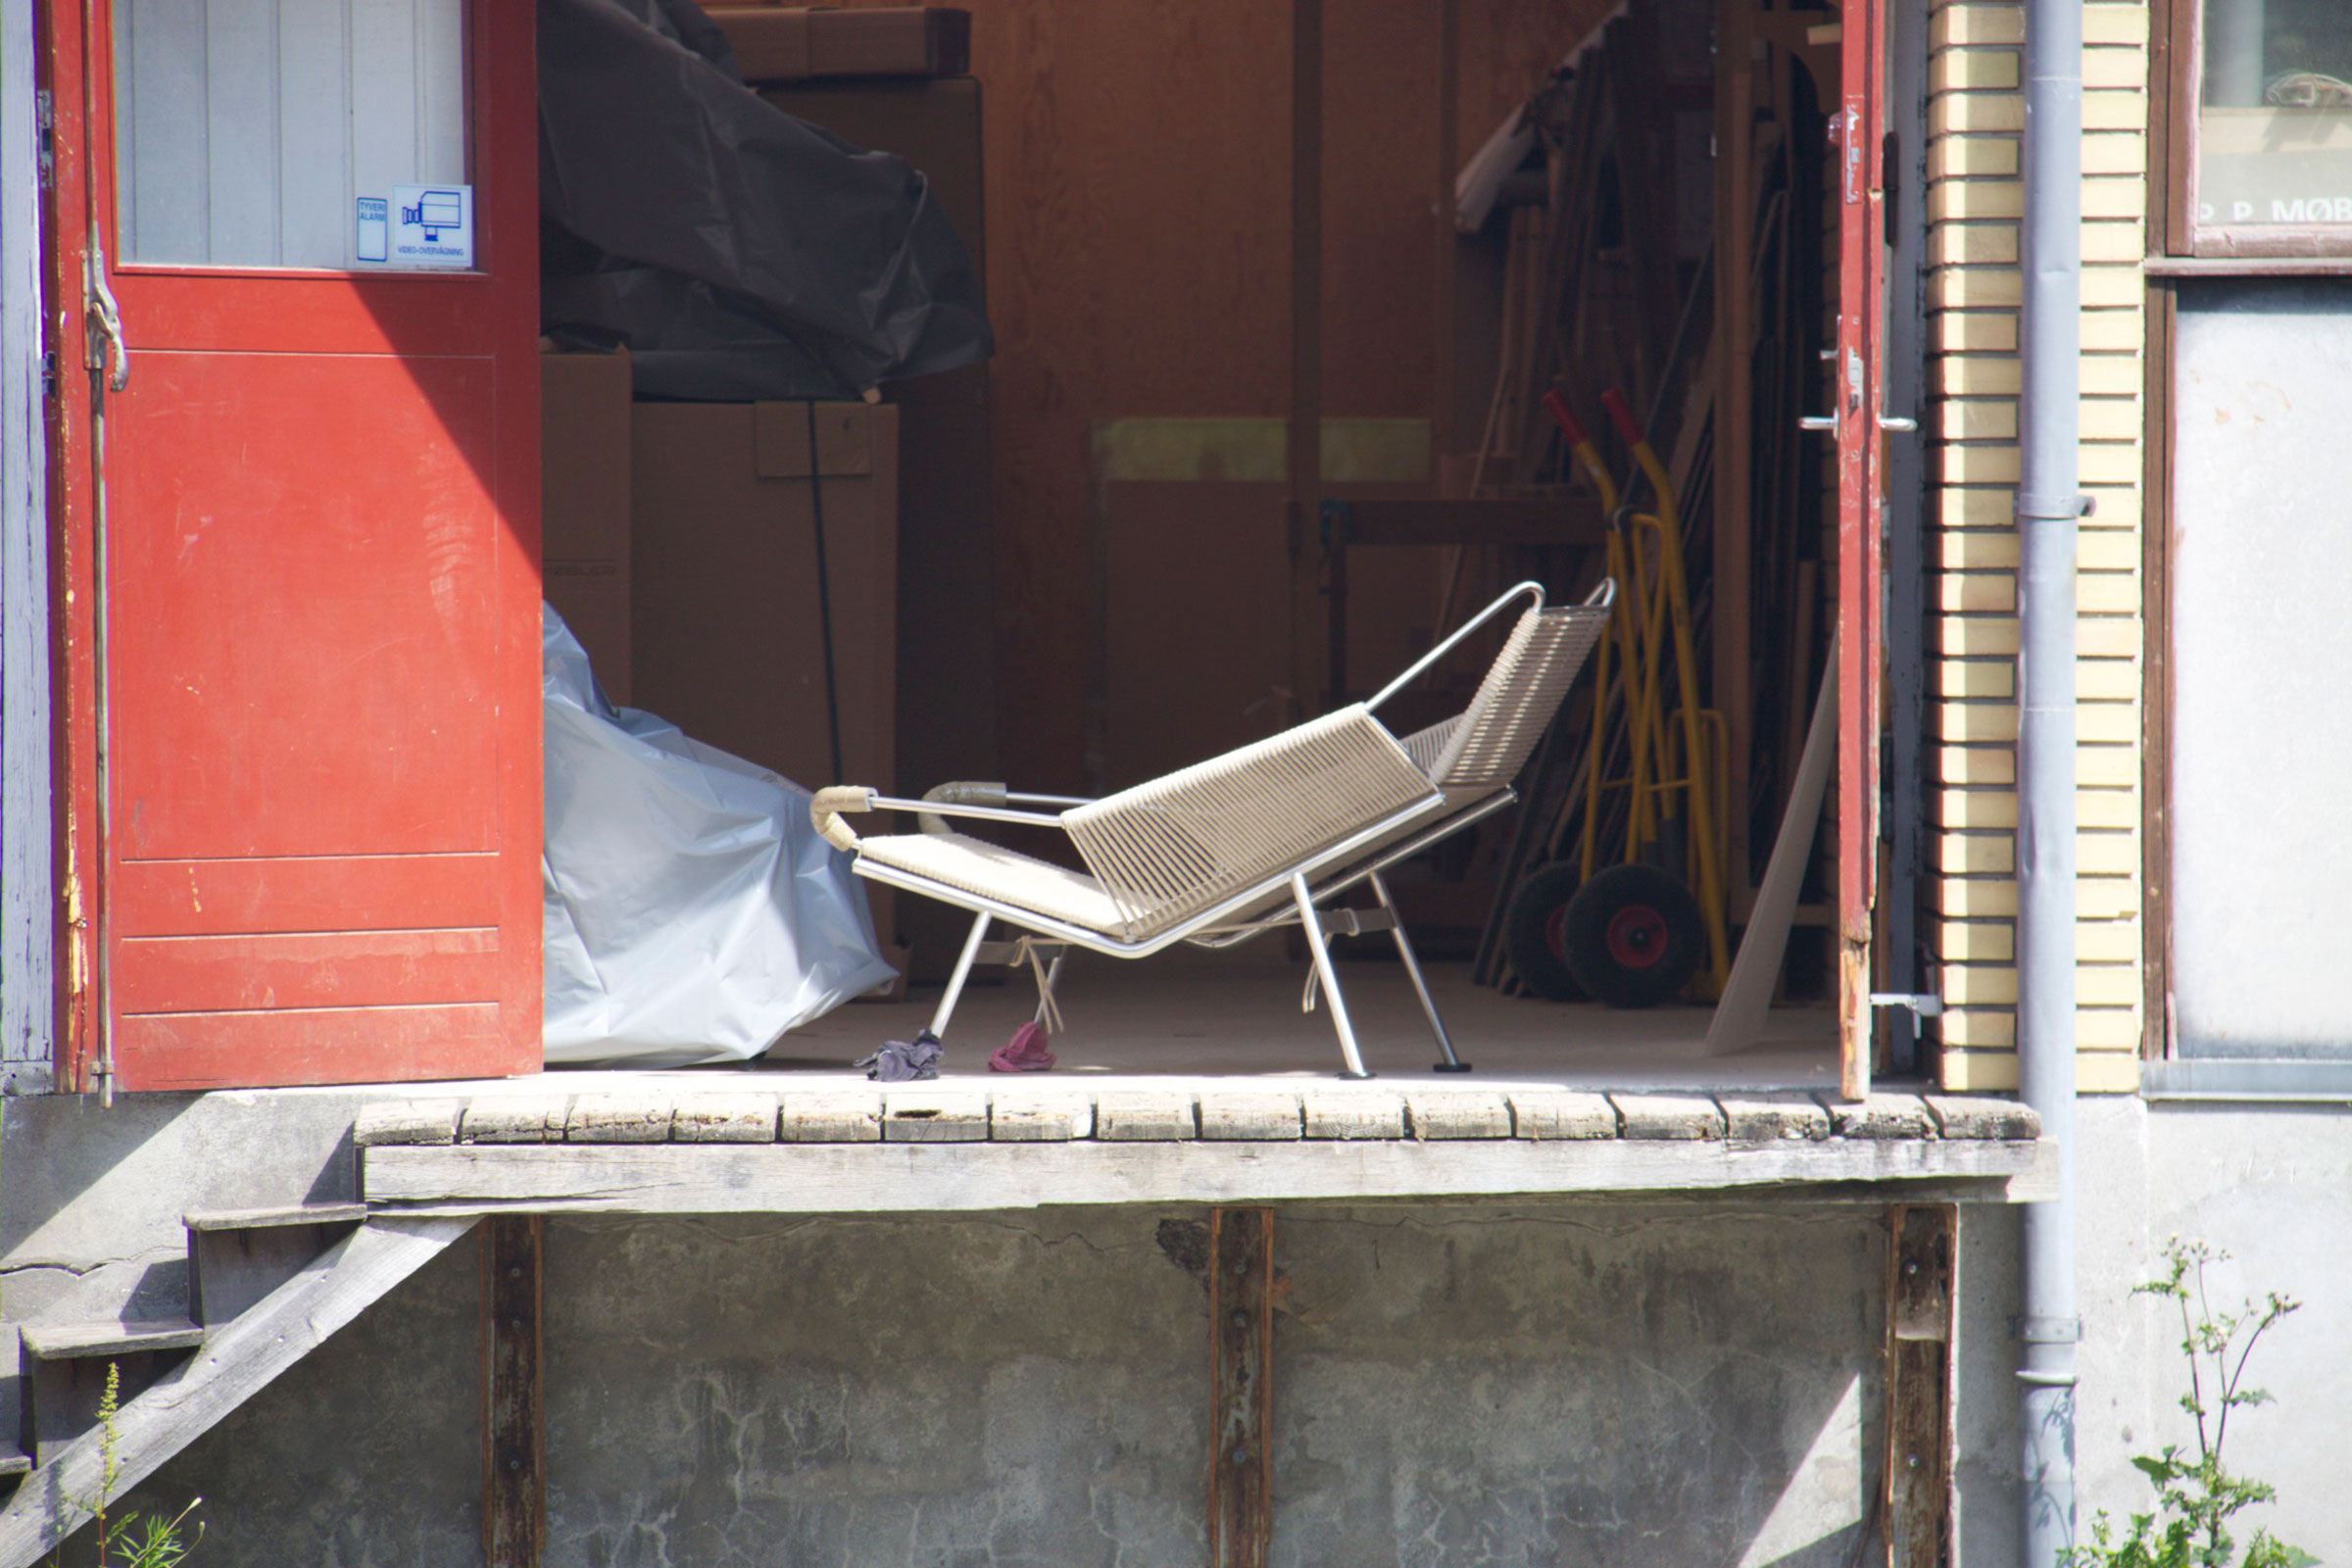 Spotting a Flag Halyard Chair finished at PP Møbler with my telescopic lens